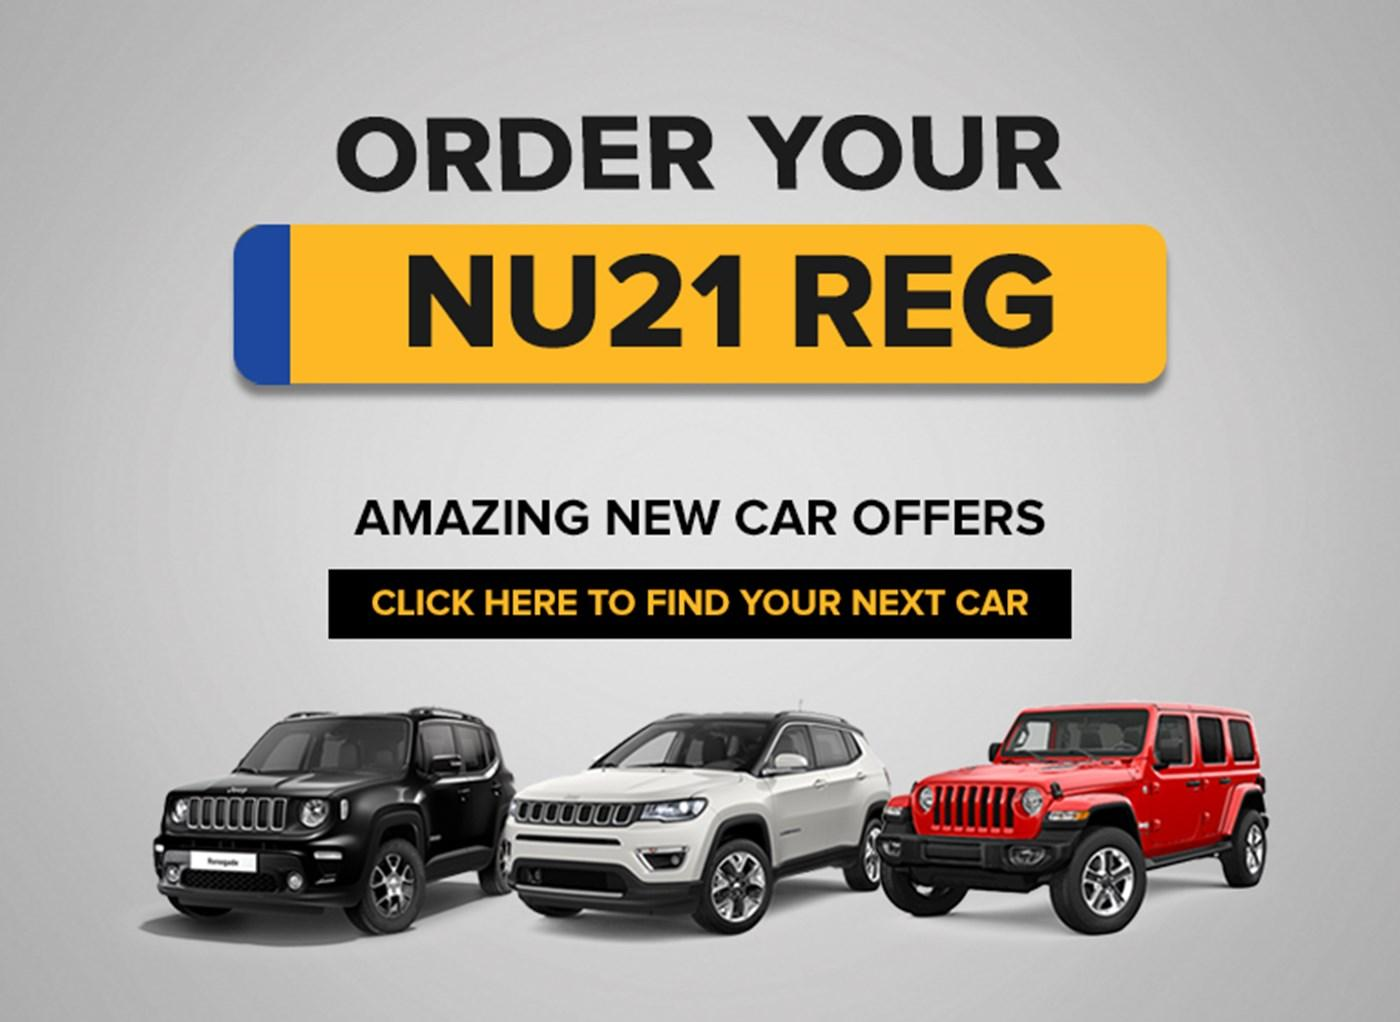 Order Your New 21 Reg with Ancaster Jeep